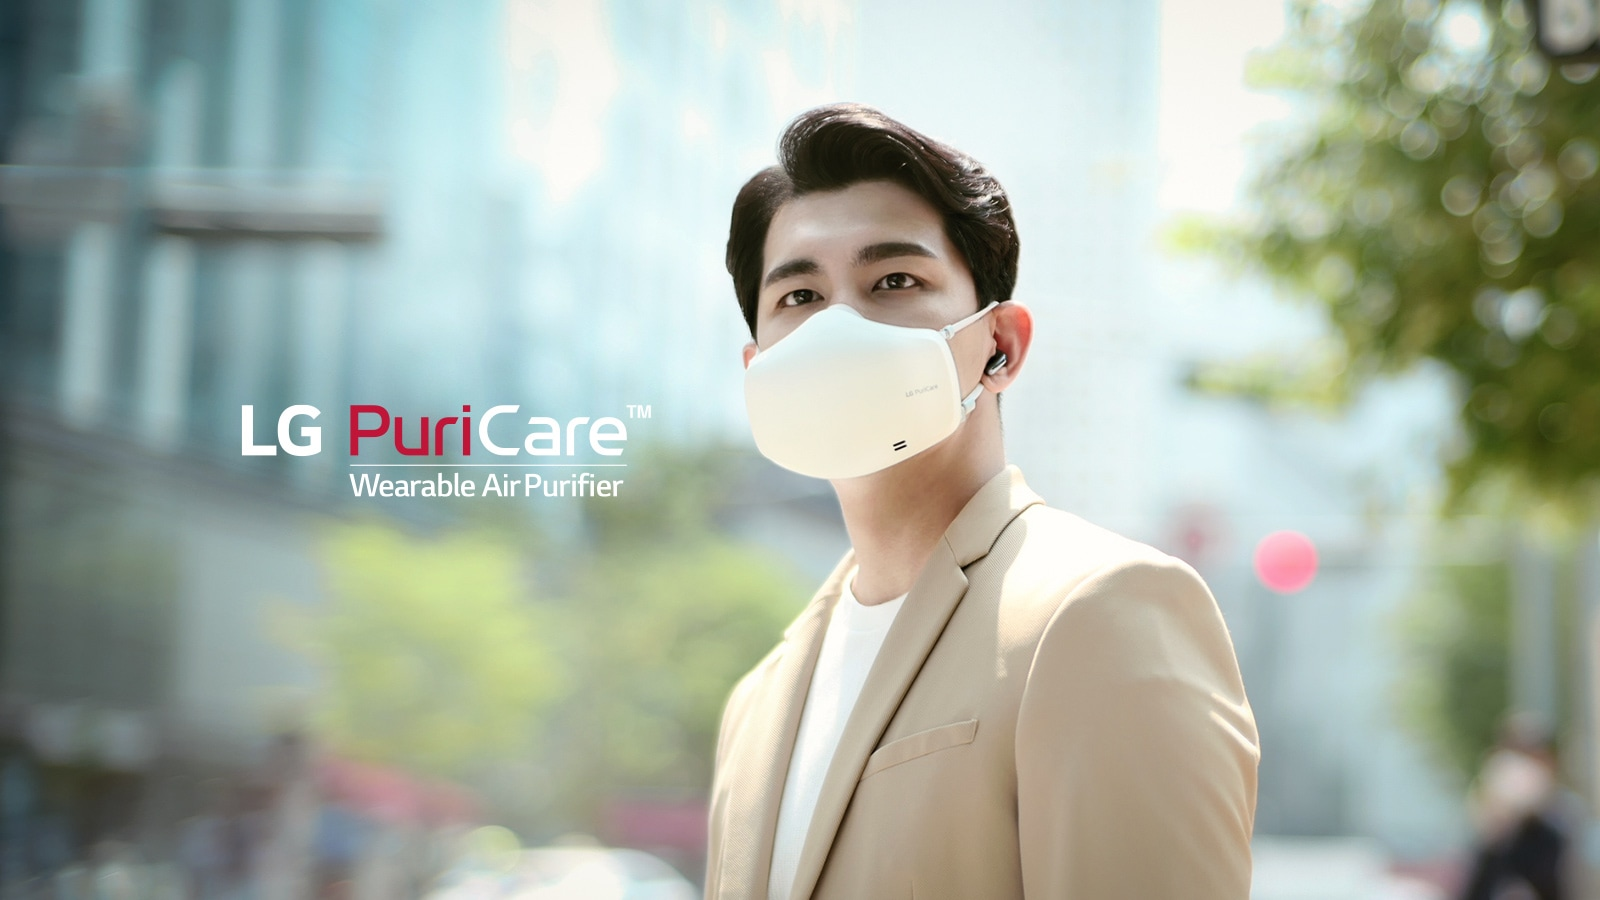 A man stands downtown in a city with the LG PuriCare wearable Air Purifier on, looking around with a blurred city in the background.